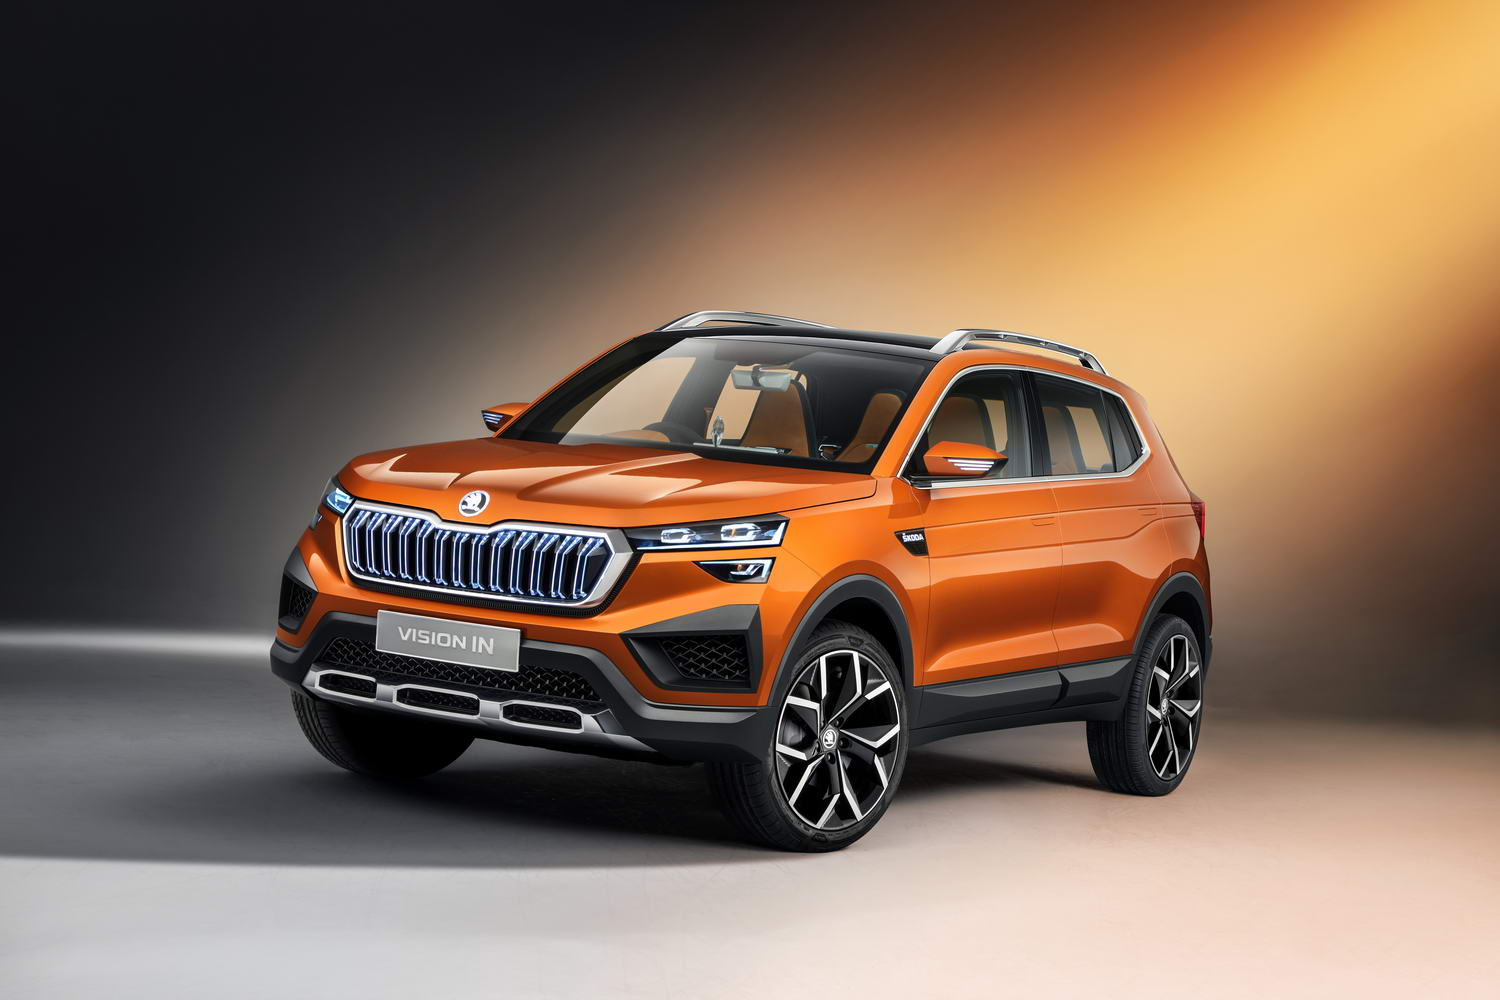 Car News | Skoda Vision IN previews new mid-size SUV | CompleteCar.ie